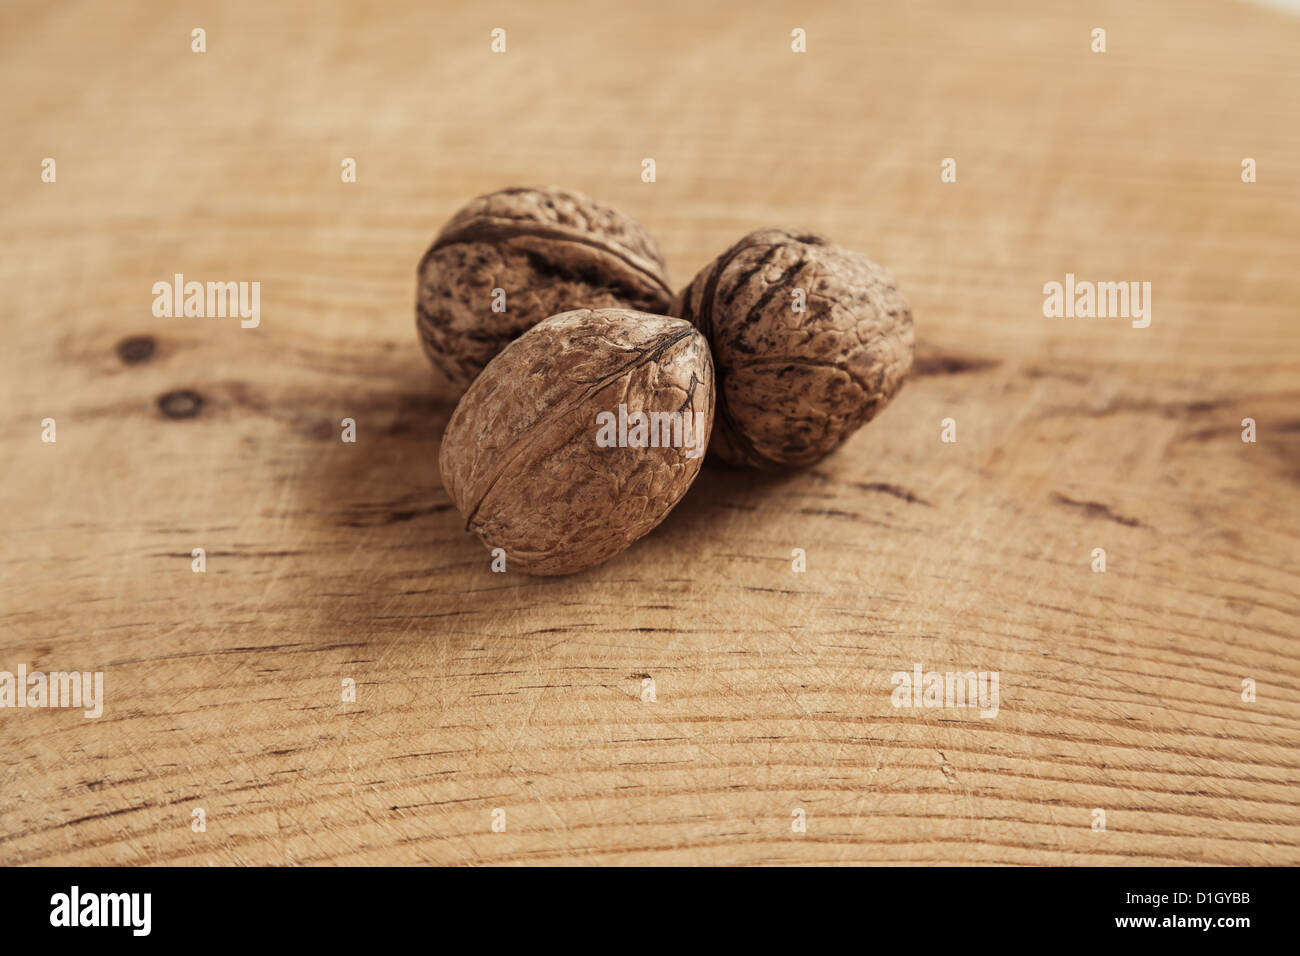 Three walnut on wooden background. Shallow depth of field. Stock Photo